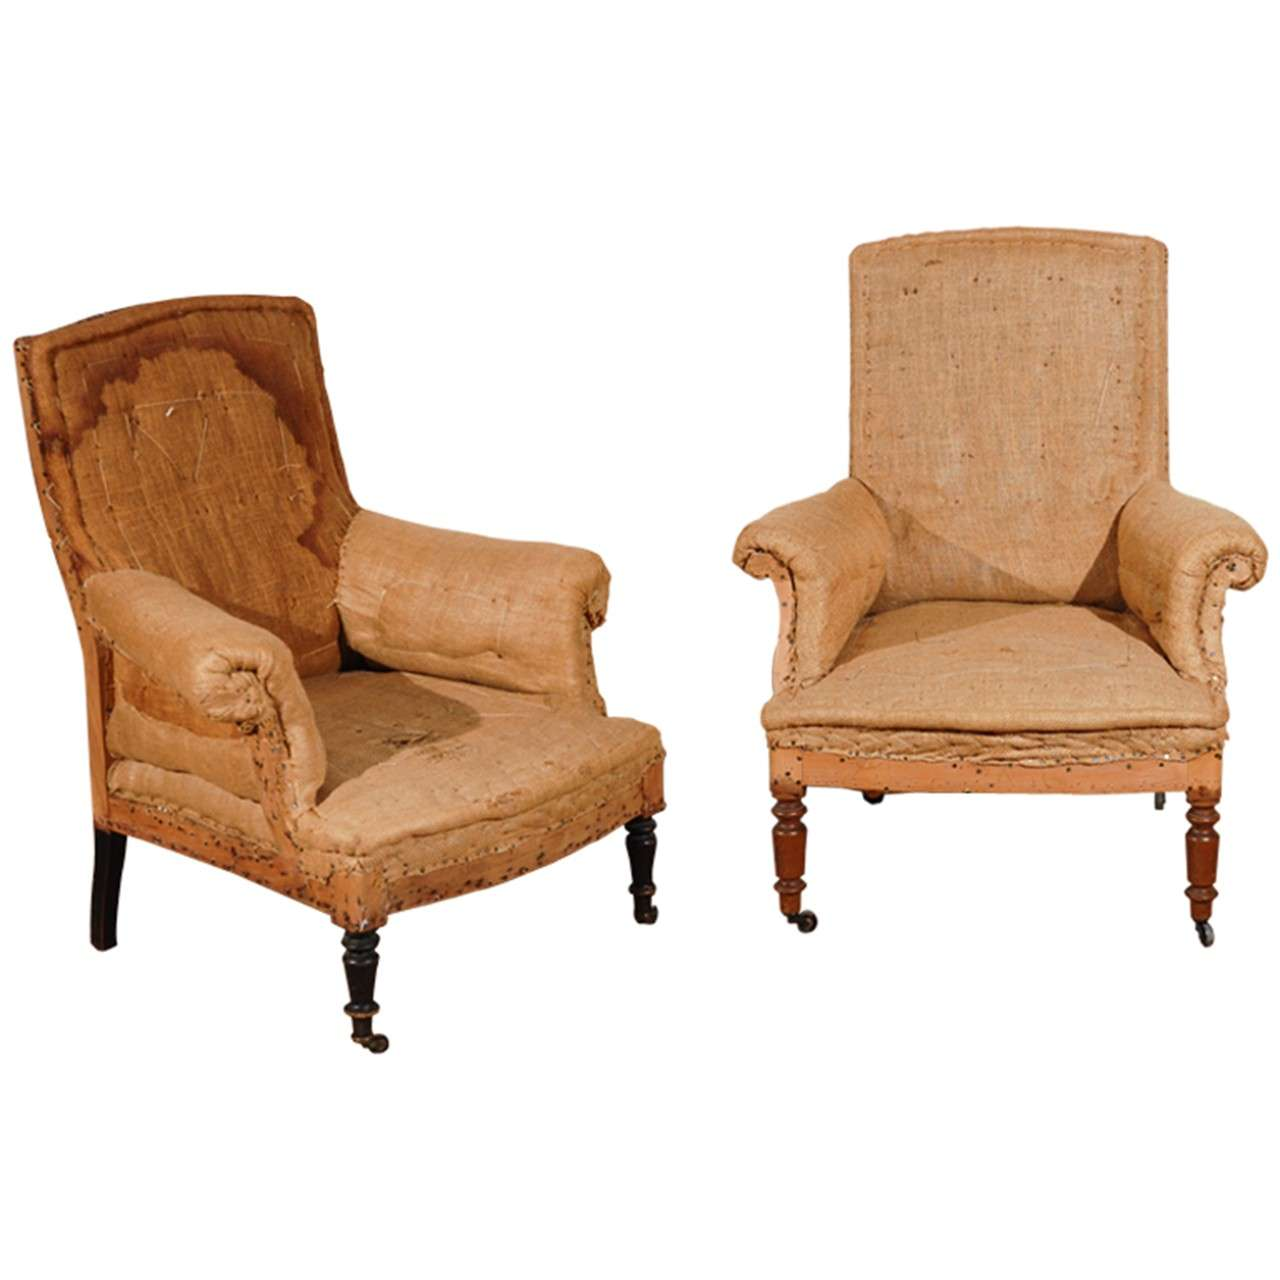 Antique French Chairs. Original Burlap And Horsehair. For Sale